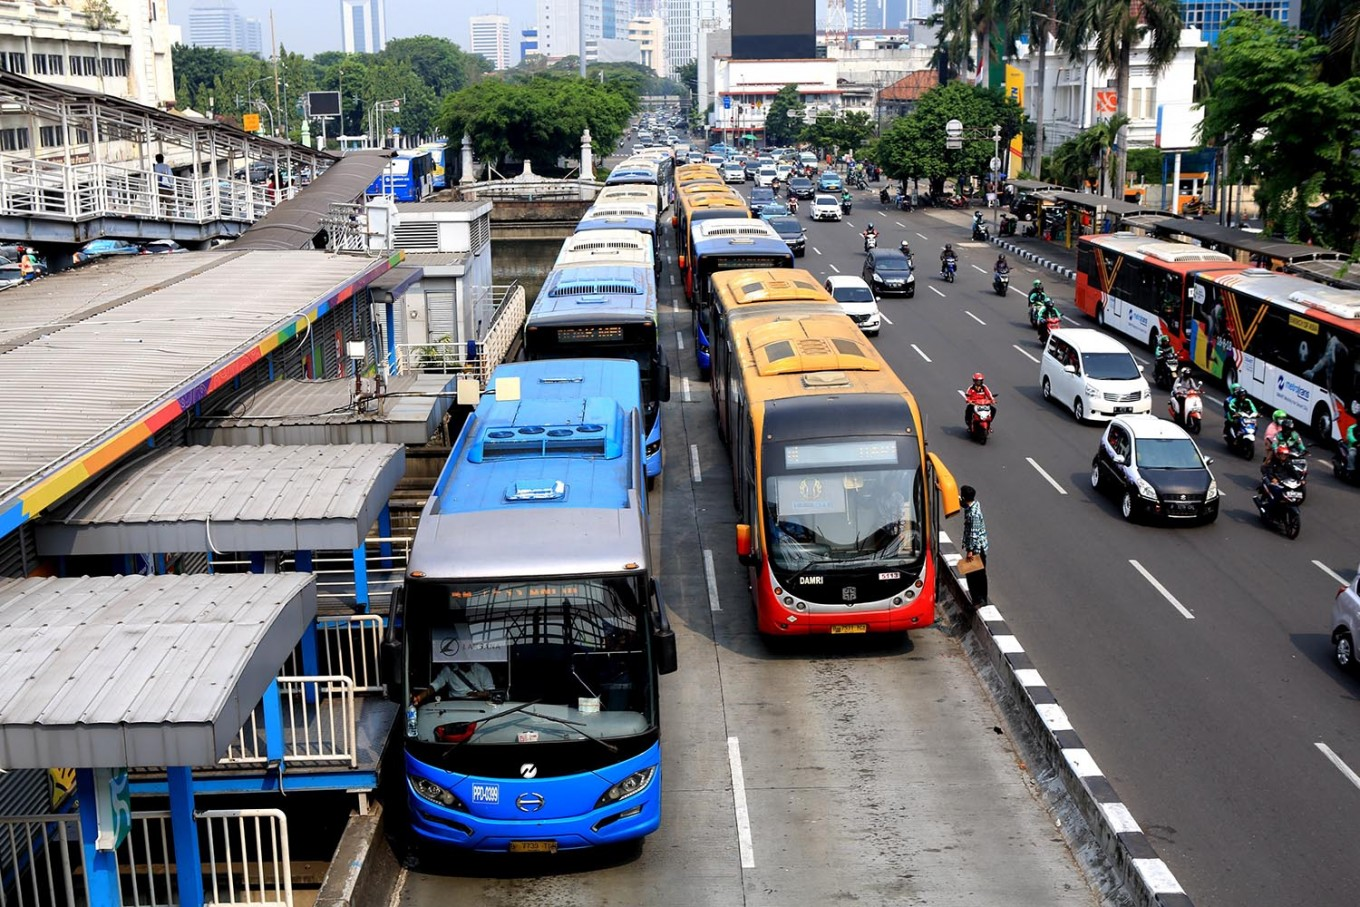 Transjakarta bus crashes to avoid hitting street sweeper